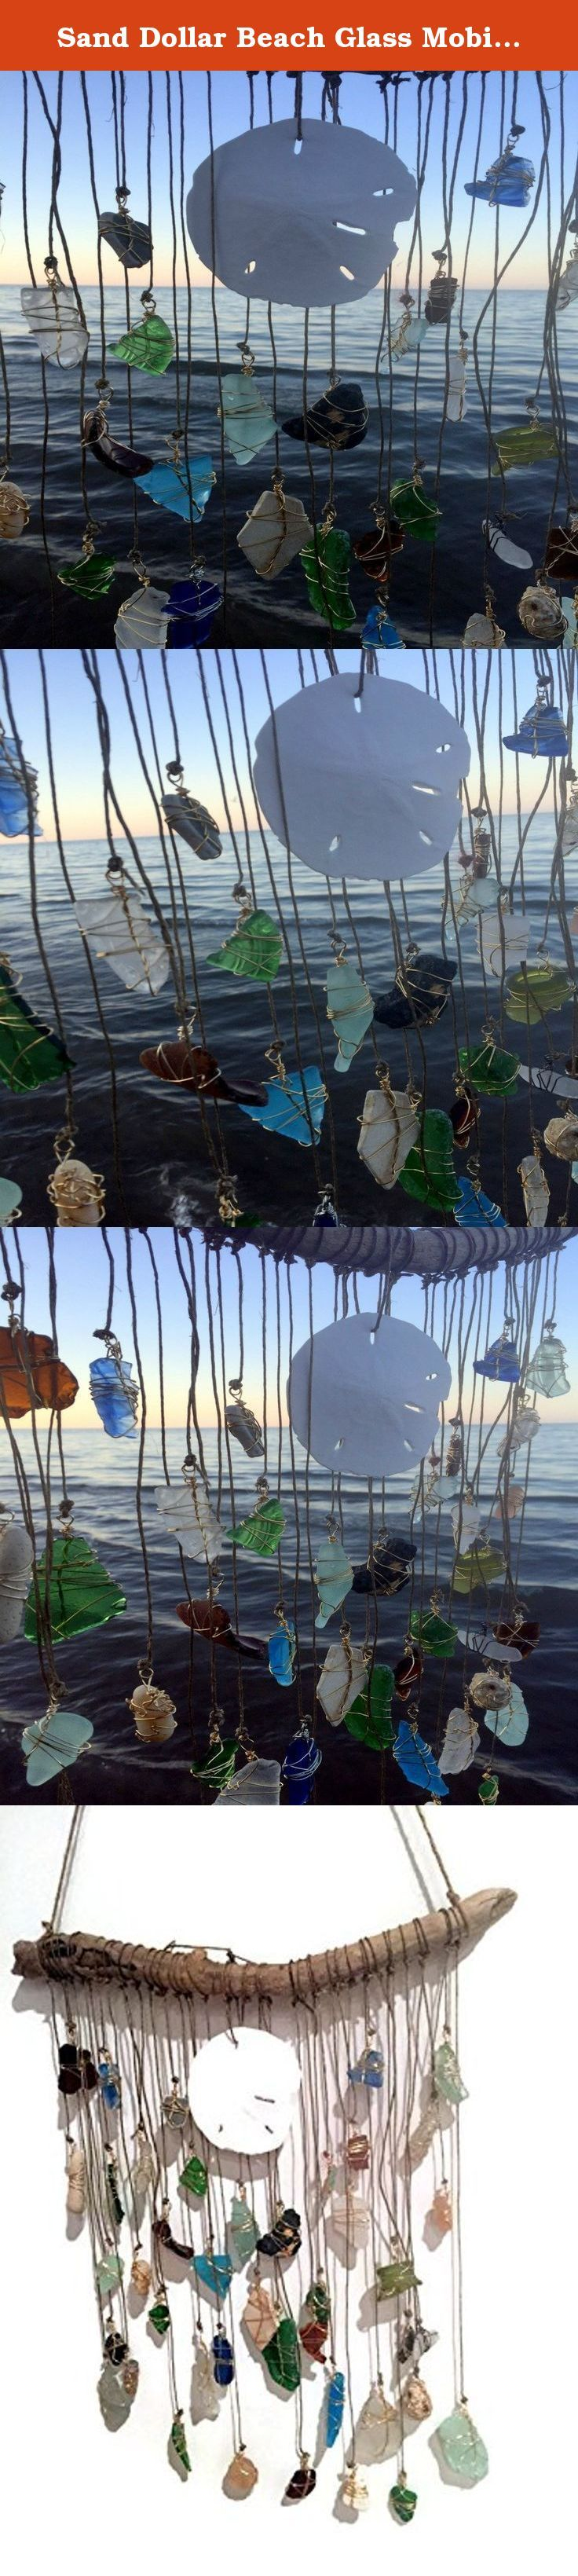 "Sand Dollar Beach Glass Mobile Sun Catcher Sea Glass Wind Chime Bohemian Wedding Gypsy Style Eco Friendly Decor Lake Erie. 44 piece sand dollar sea glass mobile, sea glass sun catcher/windchime. Perfect for a bohemian gypsy style wedding! Eco friendly Lake Erie décor perfect for the upcycling, green living, beach lover in your life. Driftwood measures 14 1/2"" W, the longest strand is 16"", shortest is 3"". Sand dollar from CA shores, beach glass collected along the shores of Lake Erie by me..."